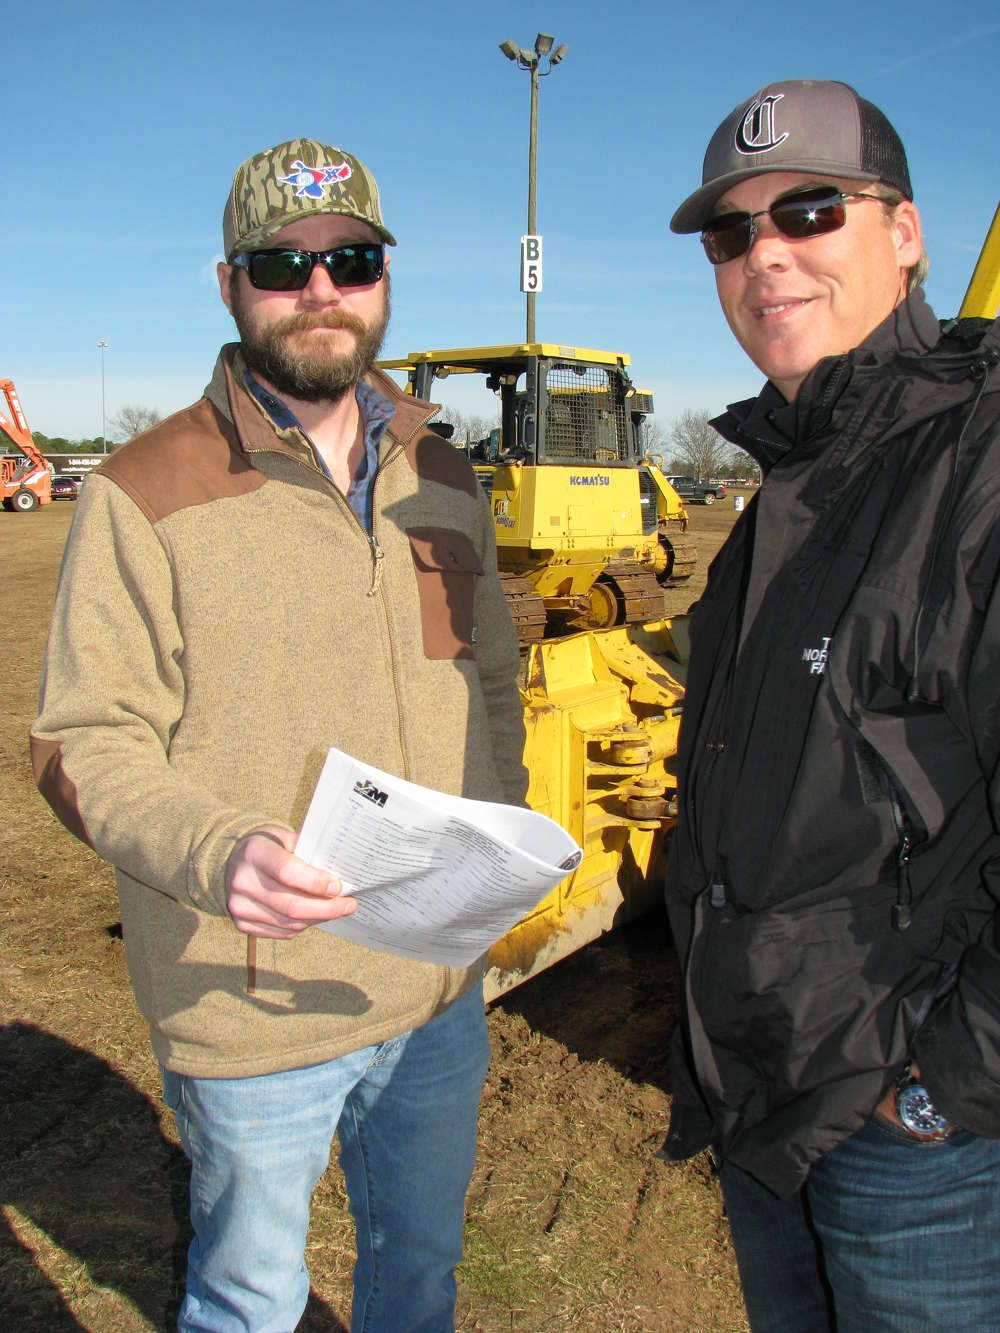 Clayton Porter (L) and Josh Hancock, both of Porter Equipment Company, Perry, Ga., talk about the machines they plan to bid on.